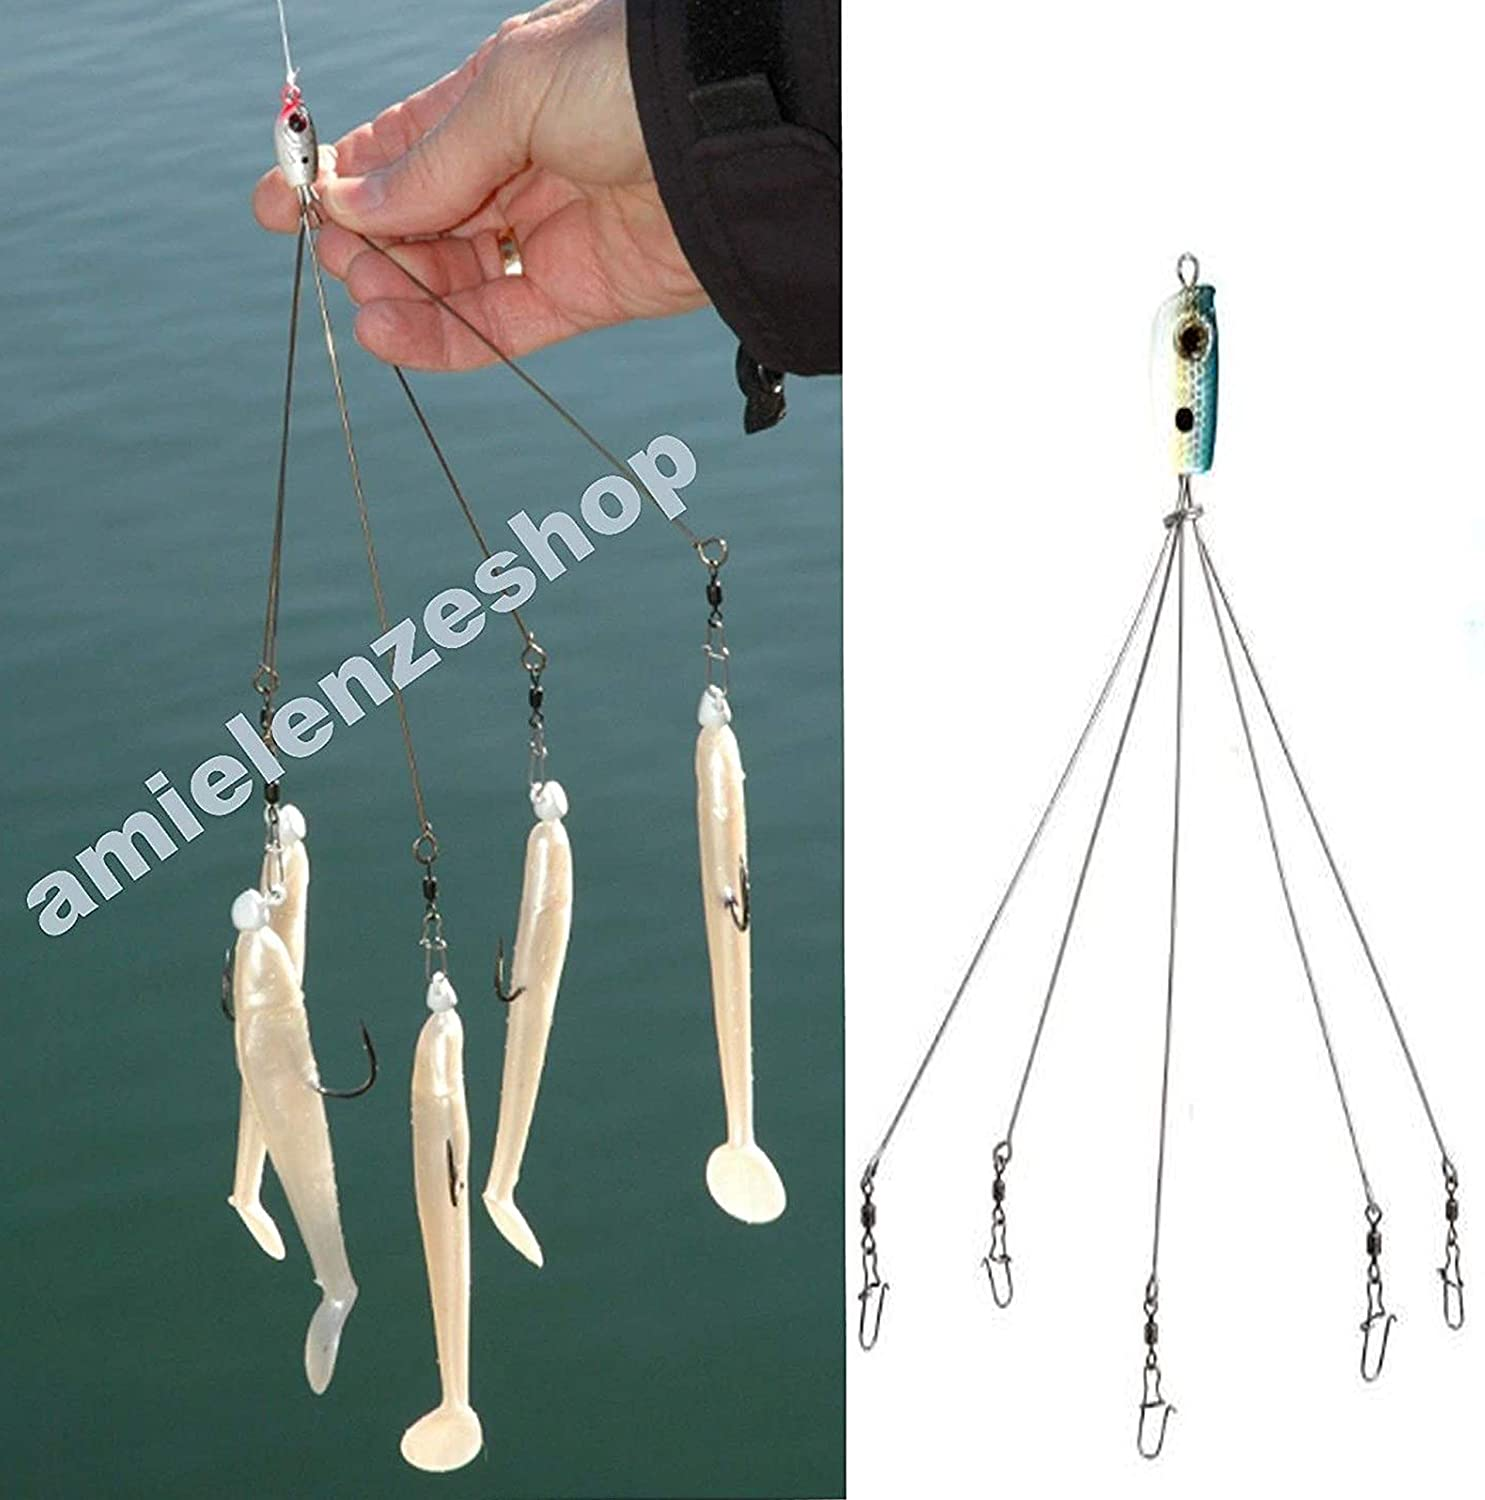 Carson Umbrella Rig Artificial Pesca Spinning Traina Playa spigola ...